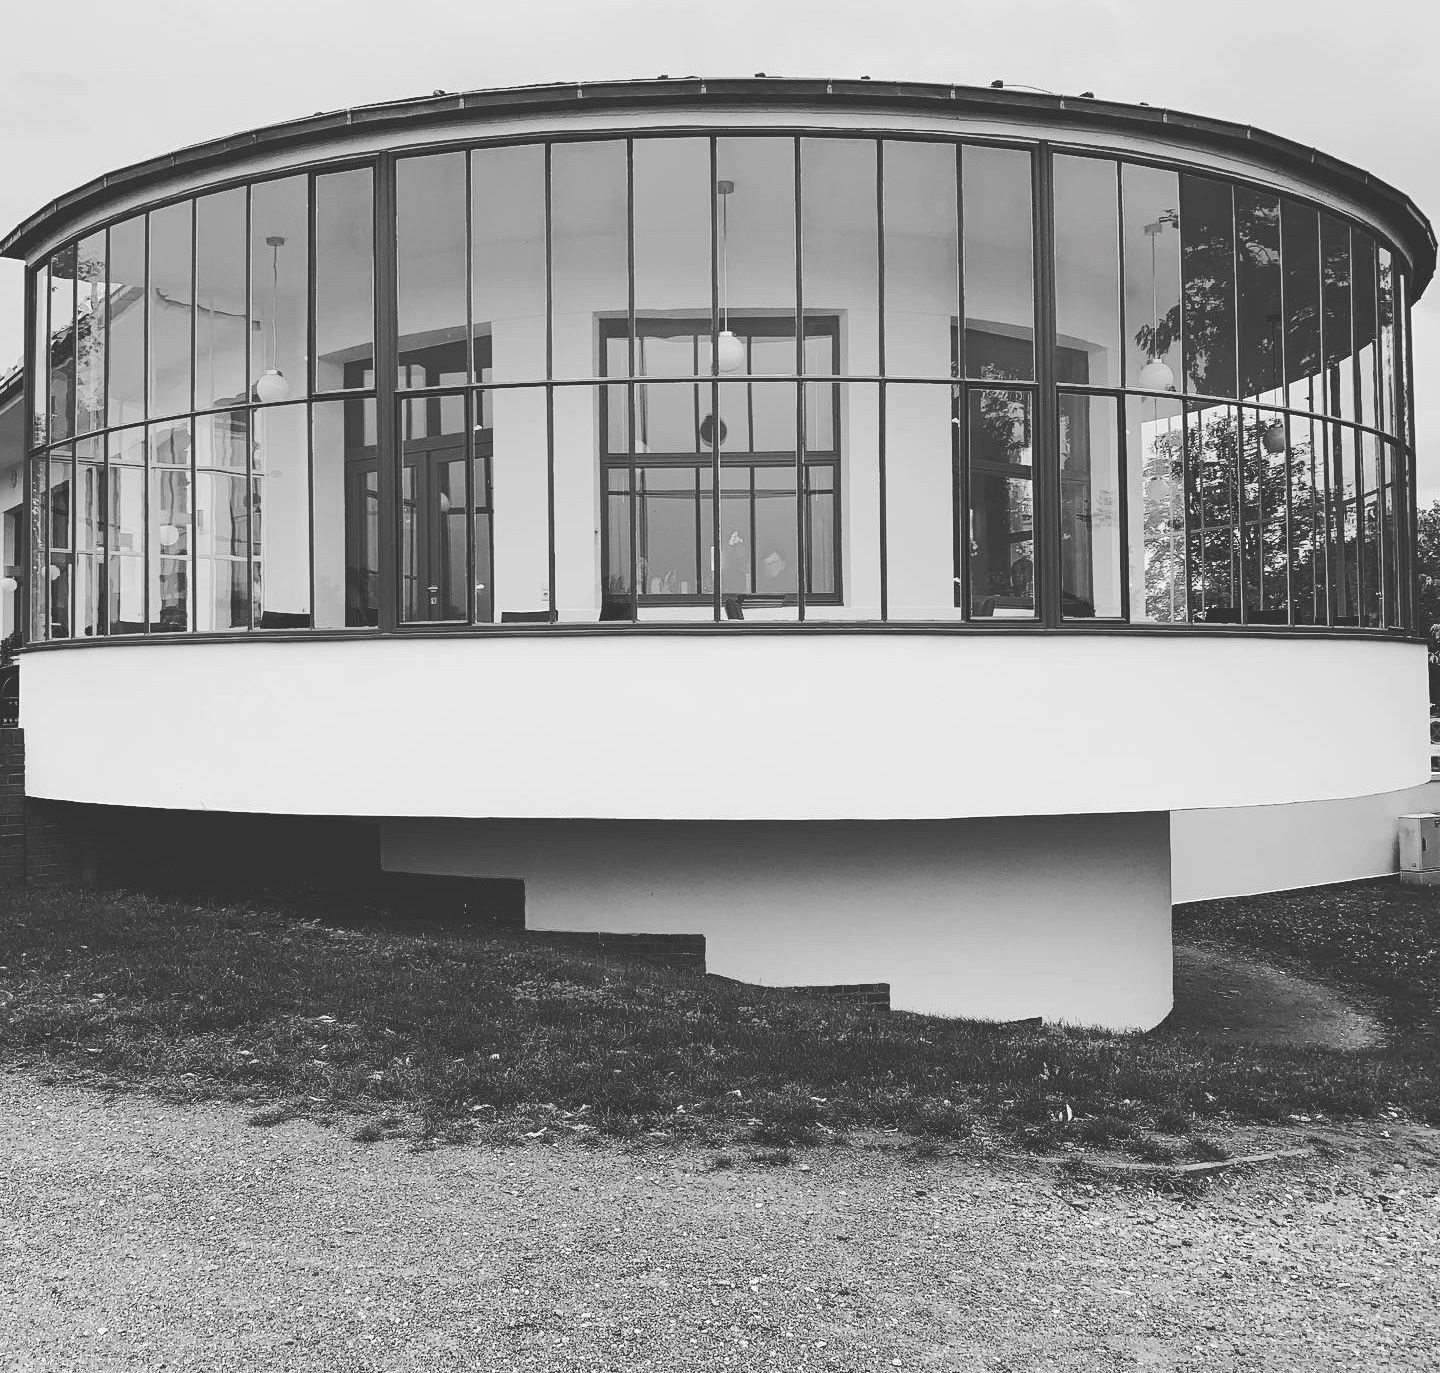 Kornhaus restaurant by Carl Fieger 1930 (a draughtsman at Walter Gropius's office), the only Bauhaus structure built on a waterfront property | Bauhaus | Germany | STIRworld